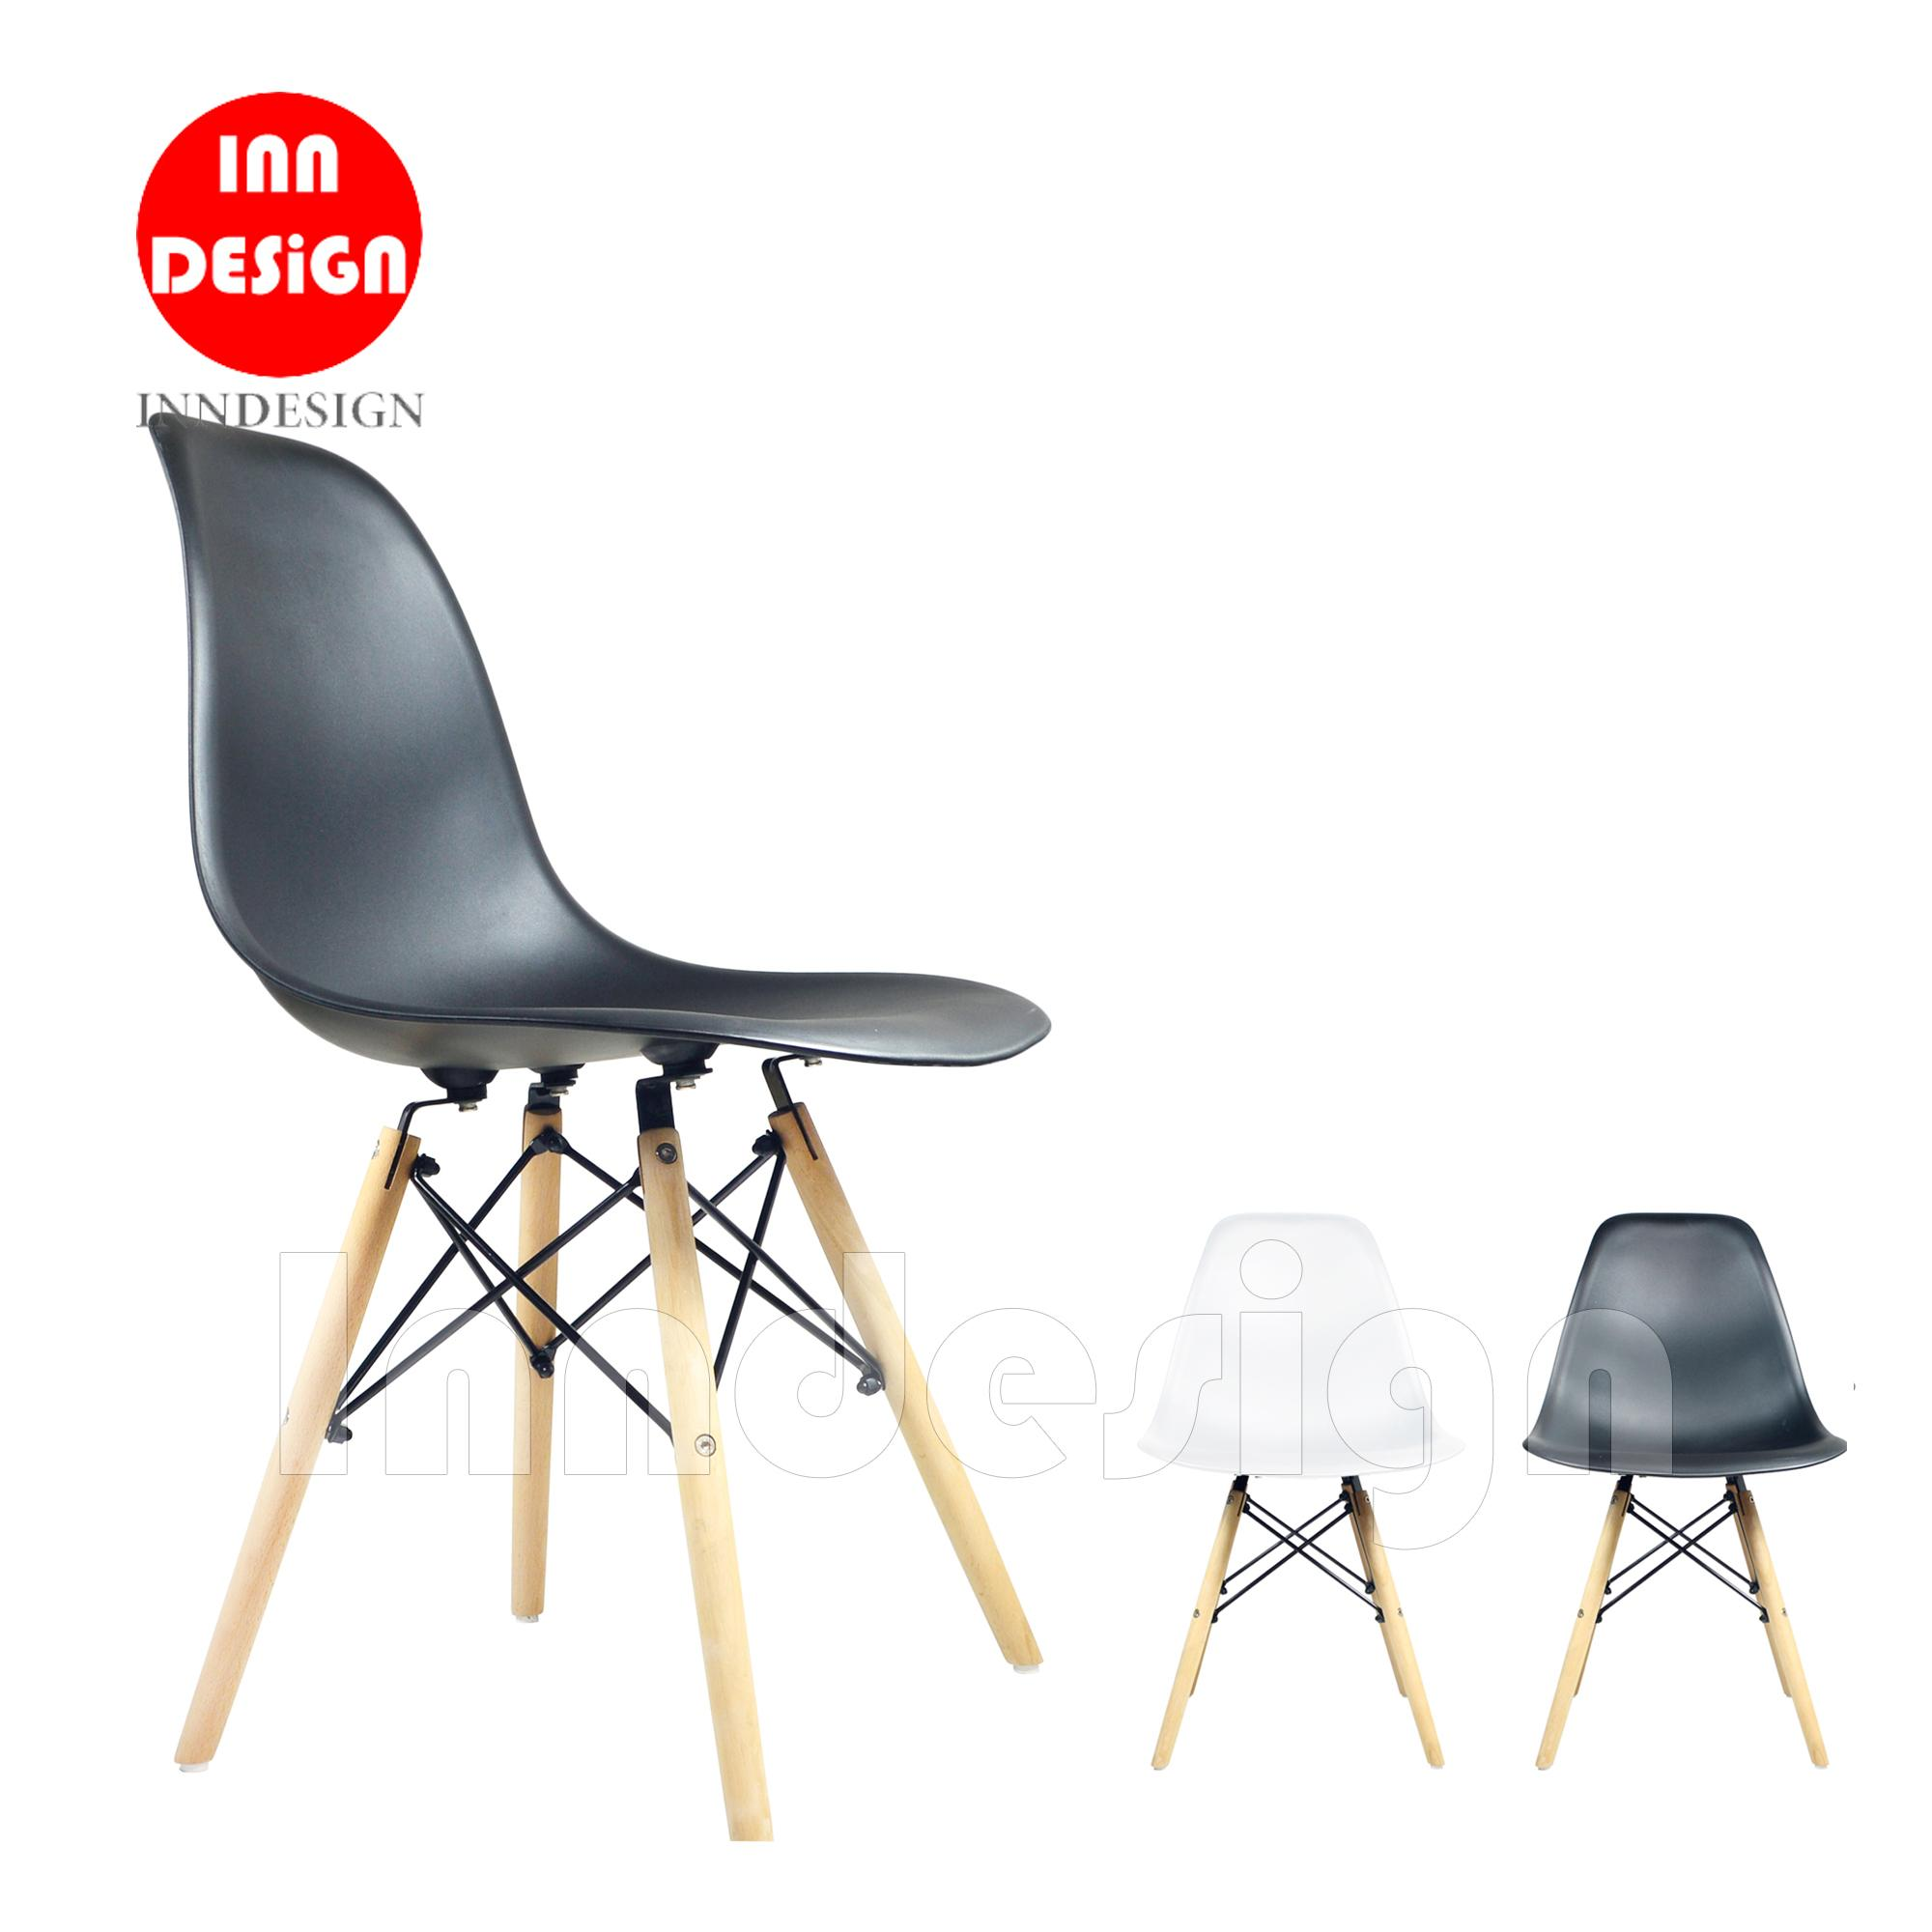 Eames Anthony Dining Chair / Office Chair (Black / White)